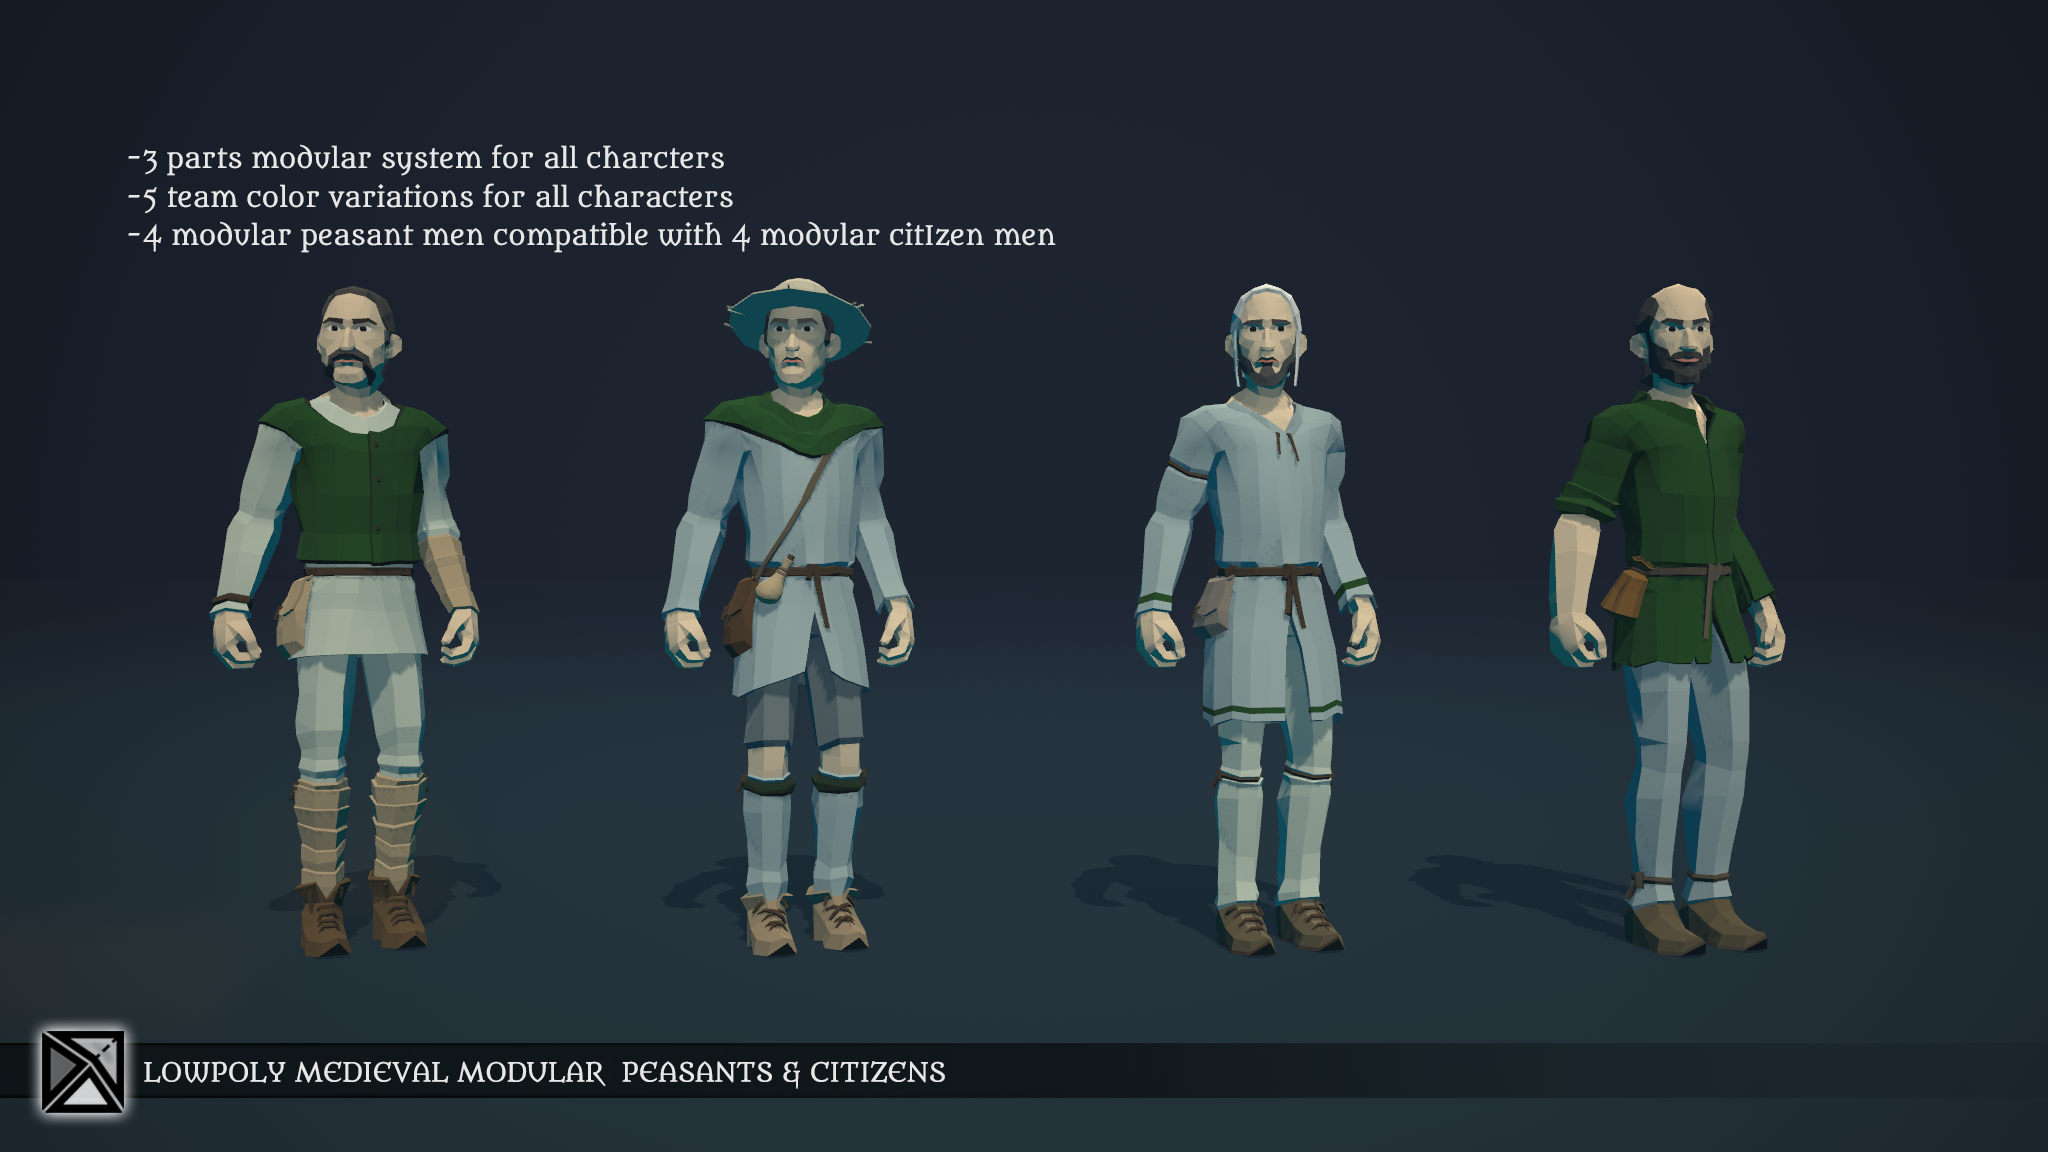 PT_Medieval_Lowpoly_Peasants_Citizens_Modular_Men_05.png